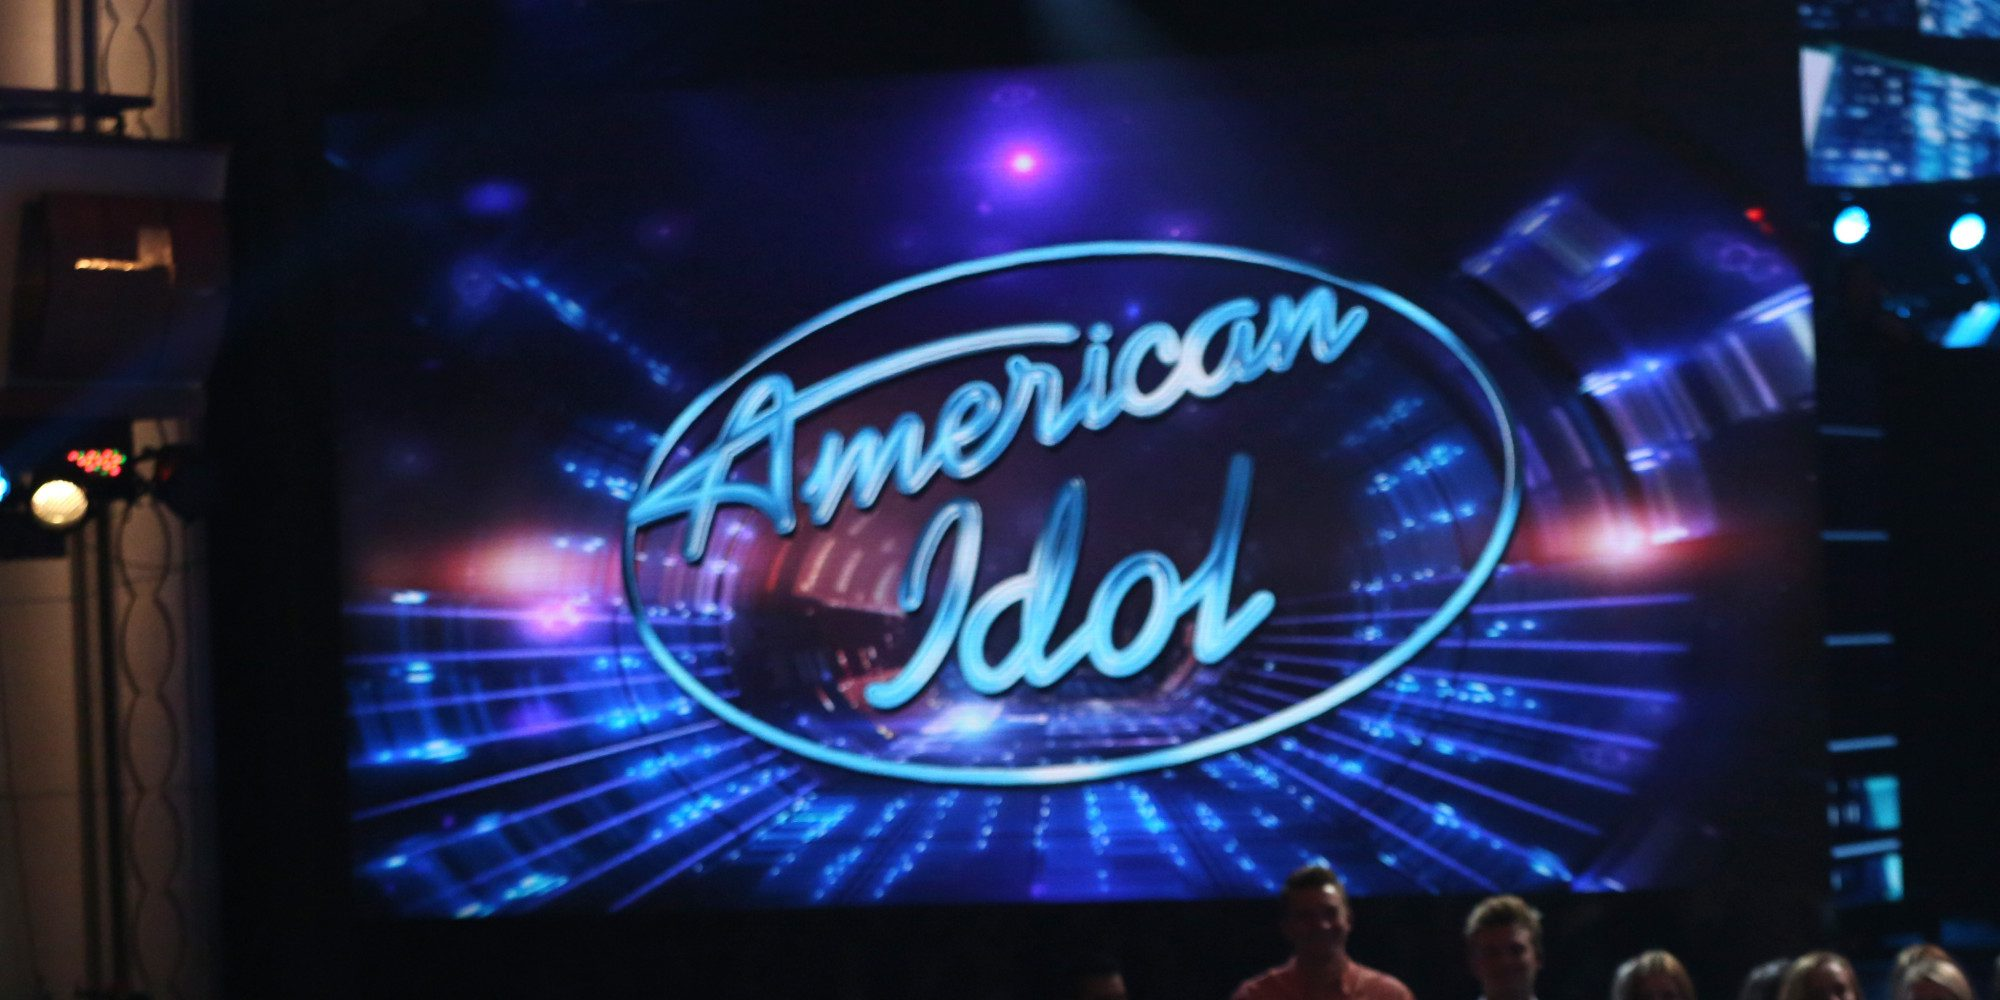 American Idol is Dead, Long Live American Idol!